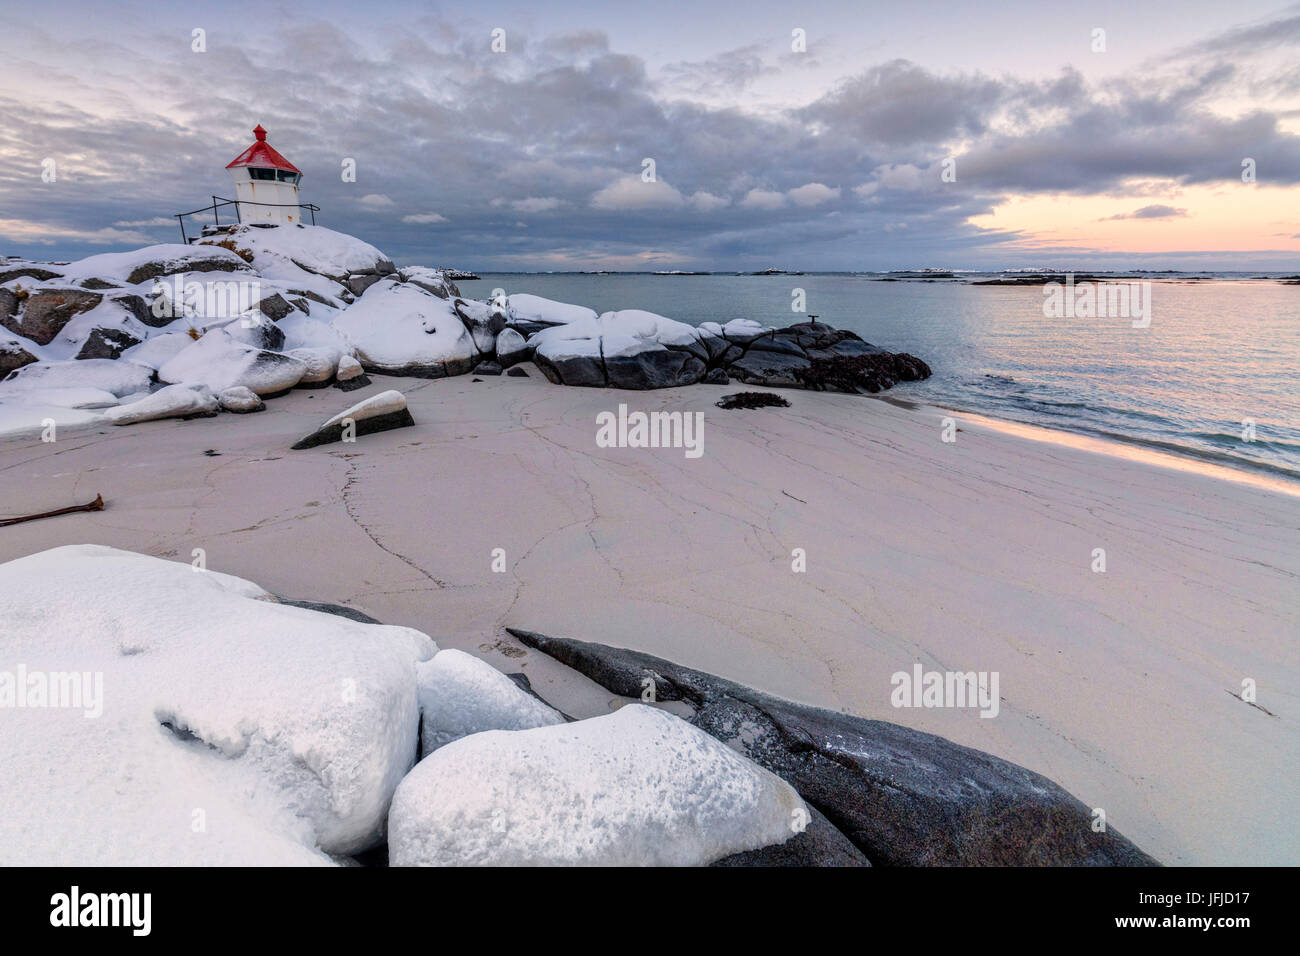 Colorful arctic sunset on the lighthouse surrounded by snow and icy sand Eggum Vestvagoy Island Lofoten Islands Stock Photo